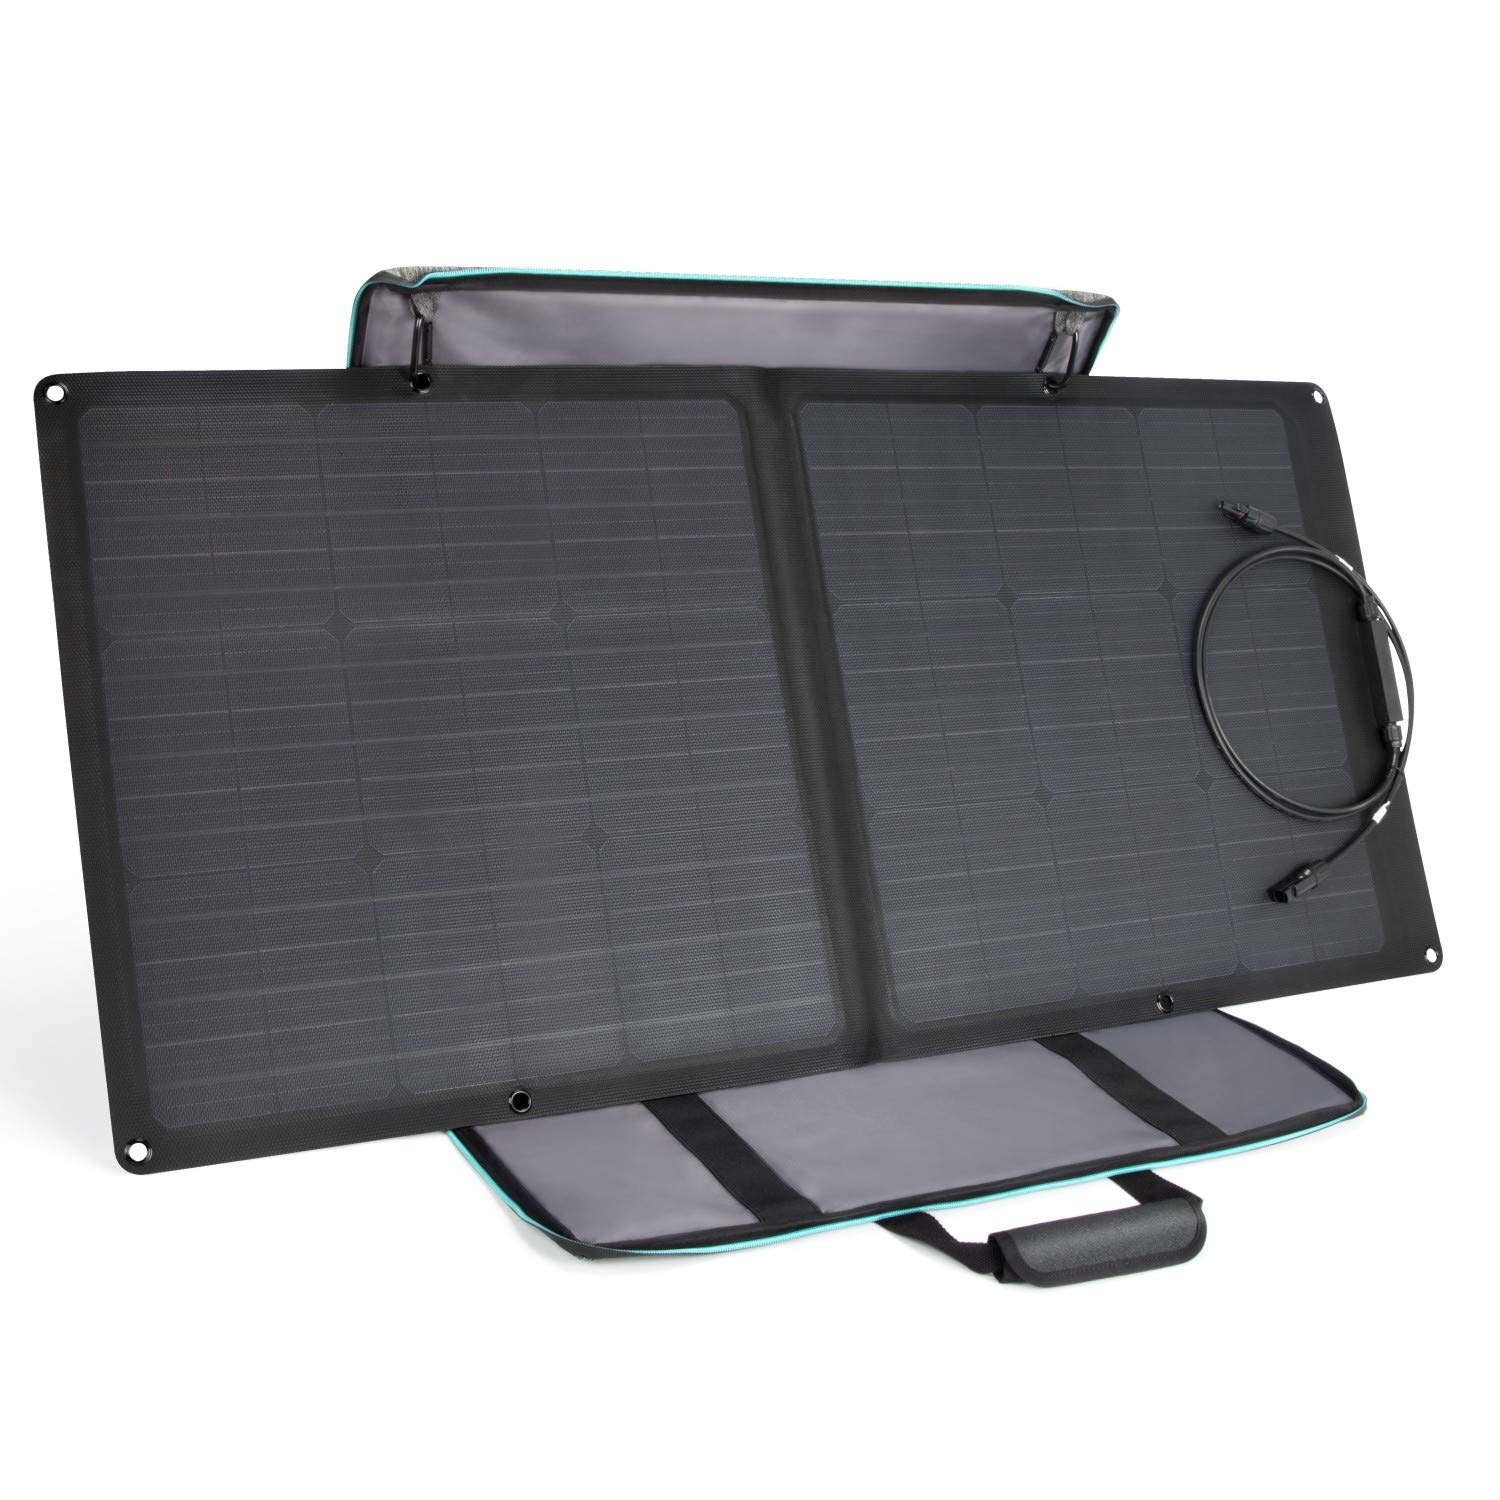 EF ECOFLOW Solar Panel 85W Portable Solar Charger Panel MC4 Waterproof Port Compatible with River 370 RIVER 412 Power Station Cables Sold Separately